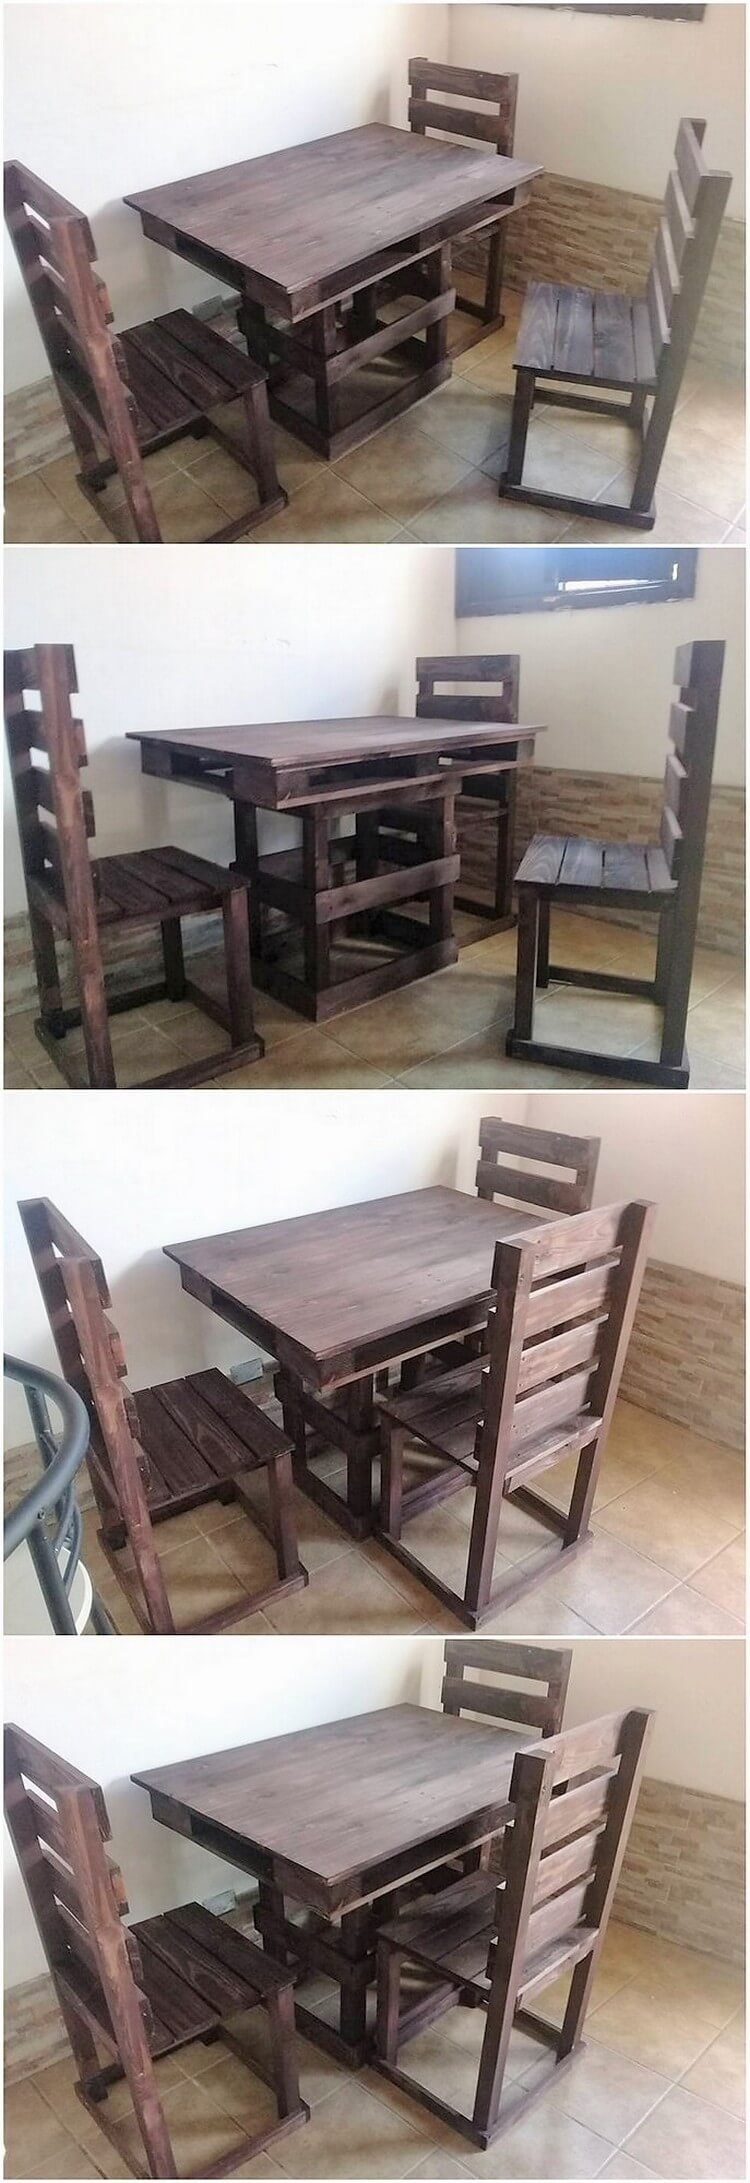 Incredible Ideas For Upcycling Shipping Wood Pallets Pallet Wood Projects